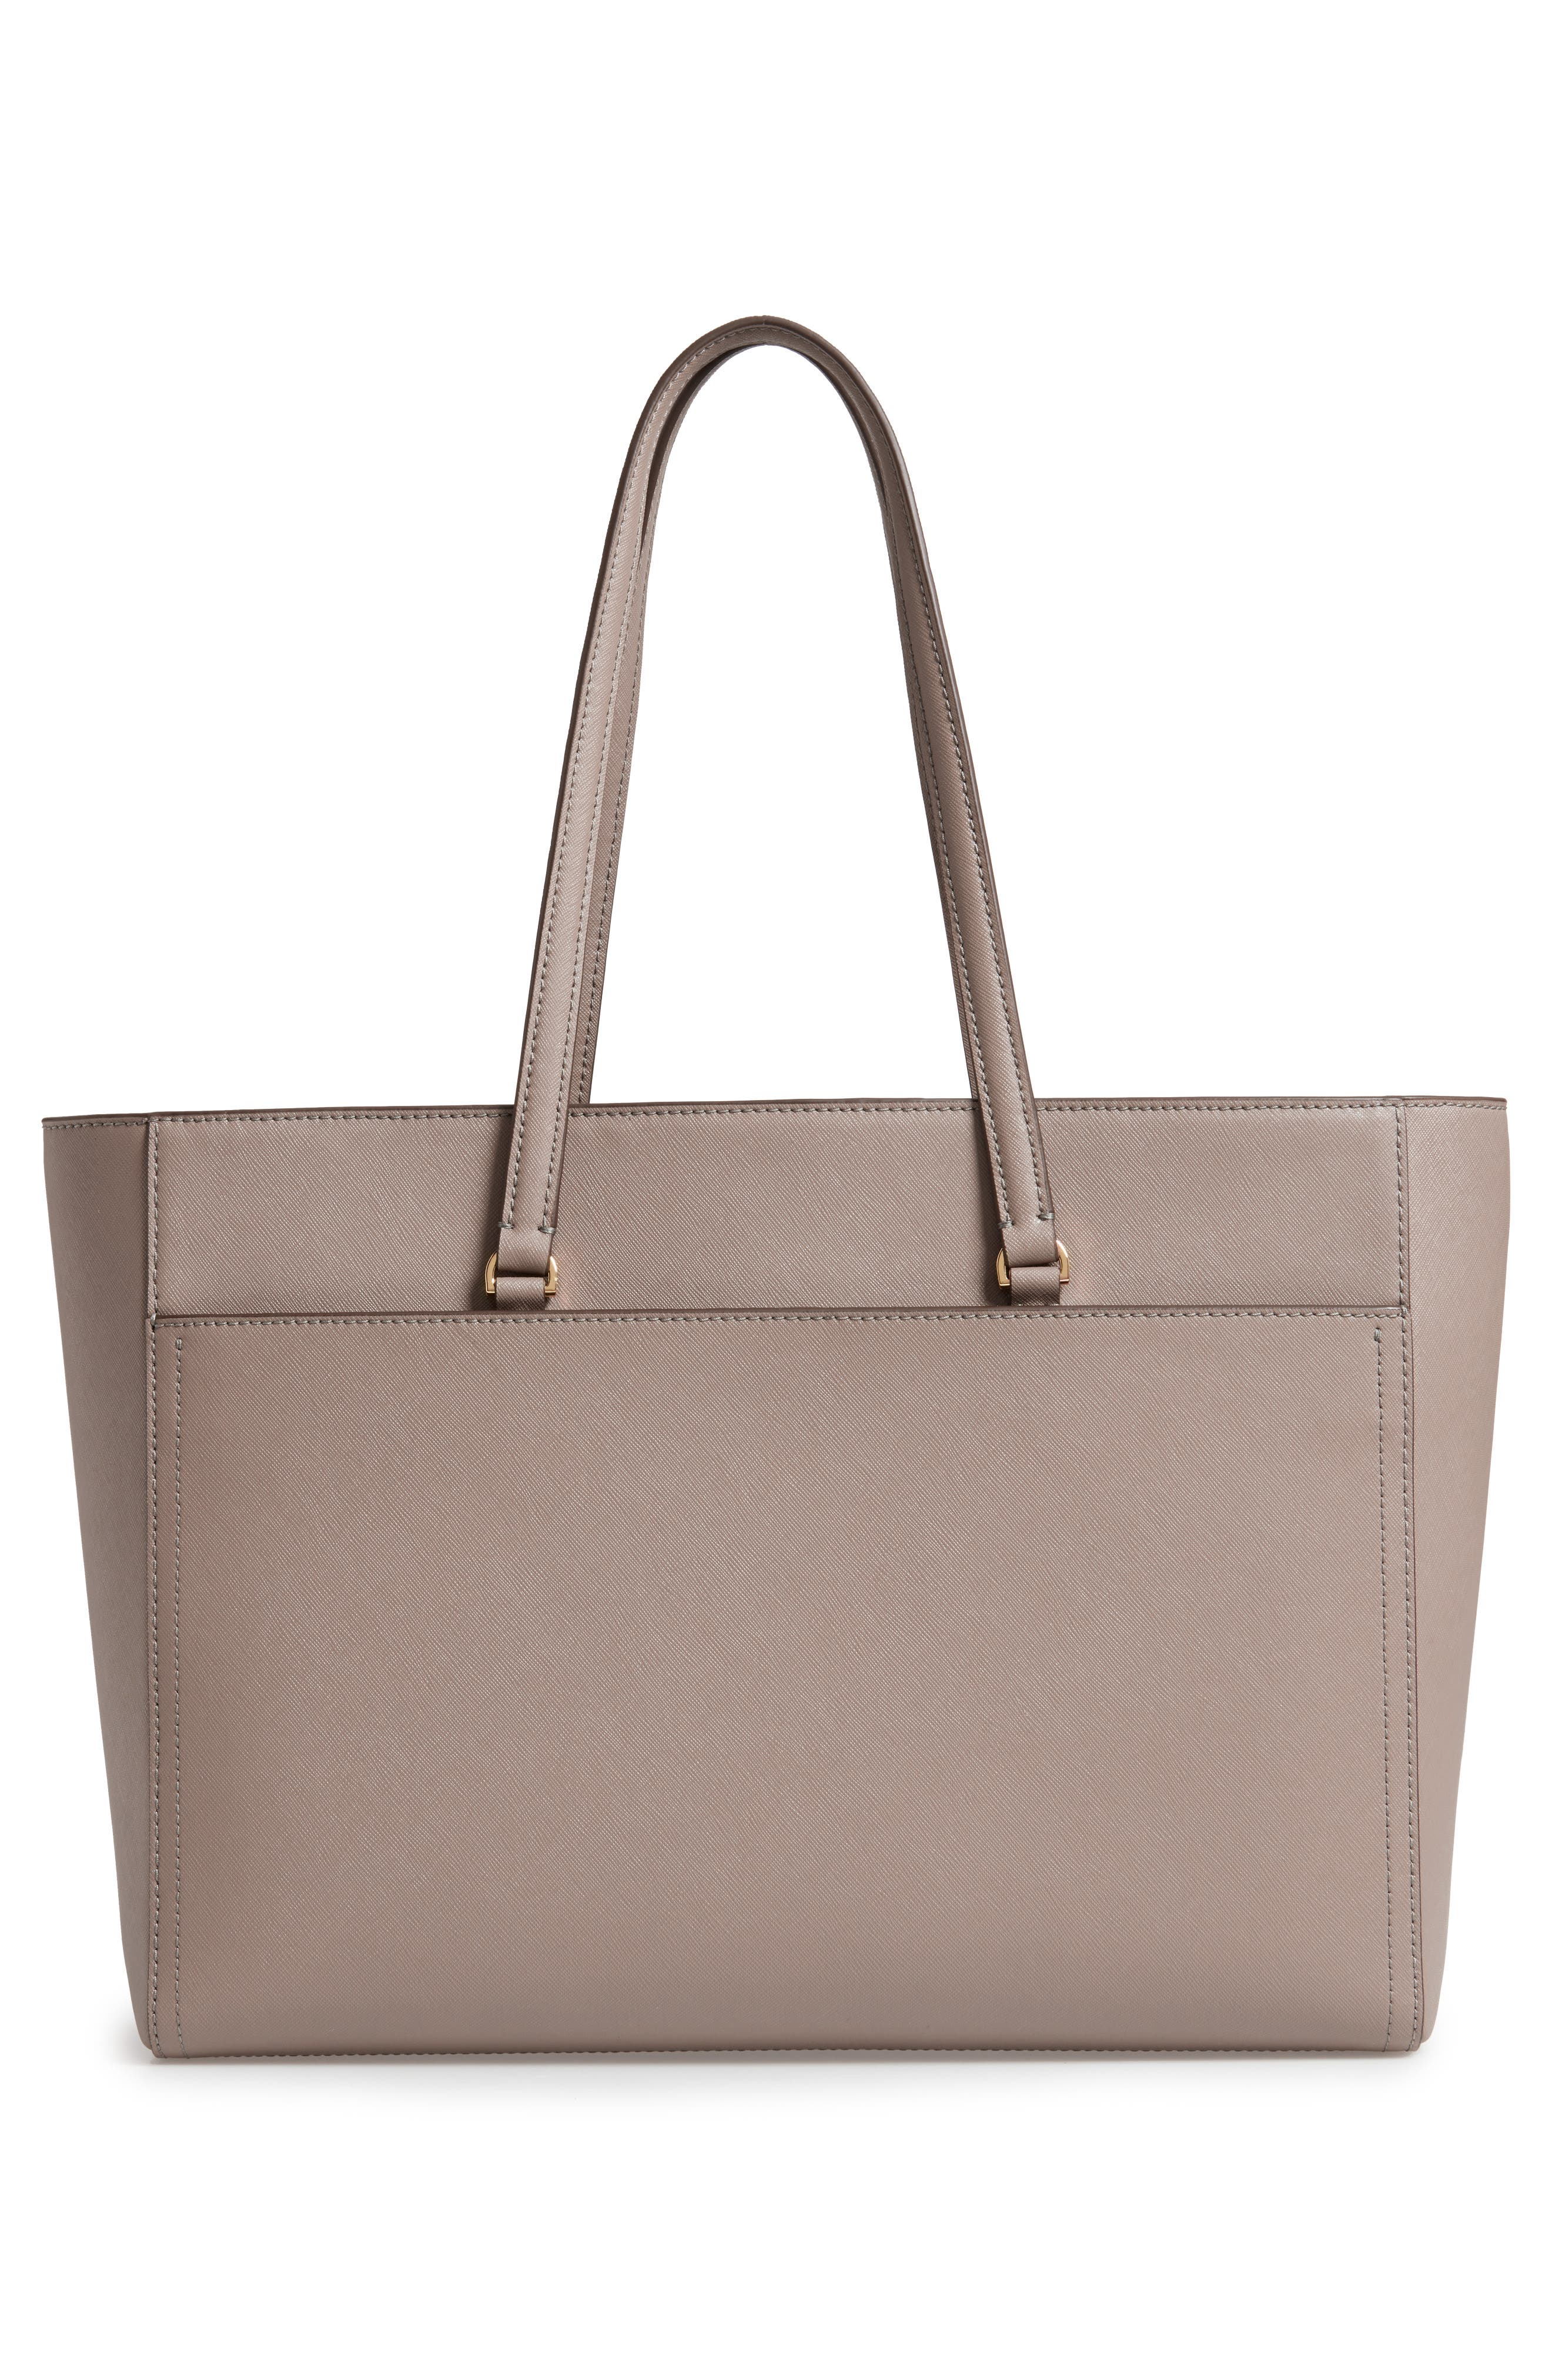 TORY BURCH, Robinson Leather Tote, Alternate thumbnail 4, color, GRAY HERON